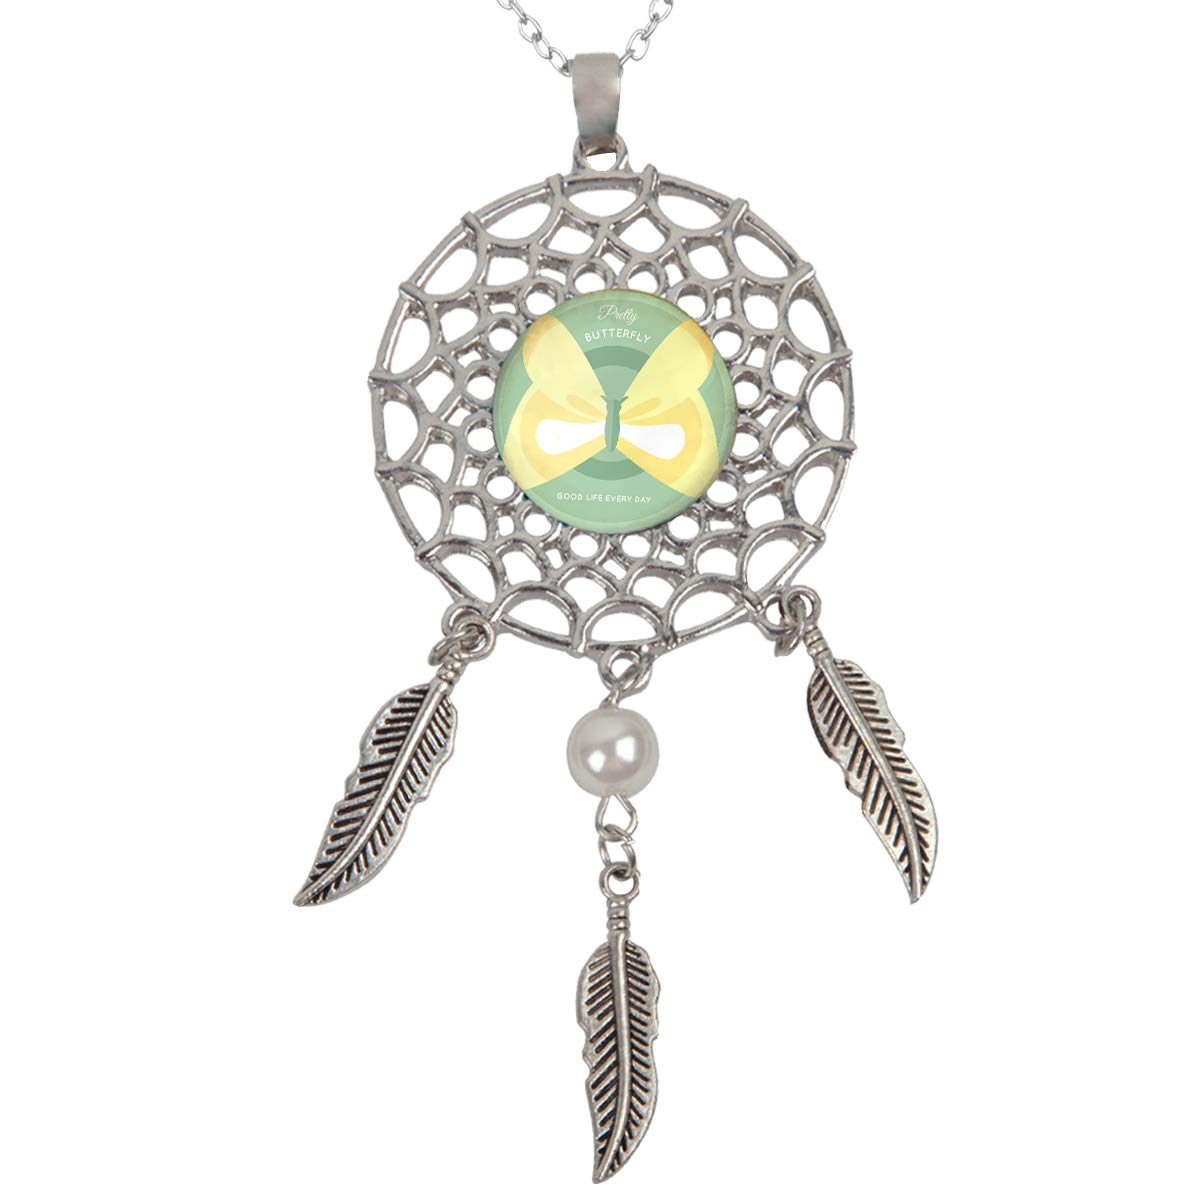 Queen Area Dream Catcher Necklace Yellow Butterfly Pendant Dangling Feather Tassel Bead Charm Chain Jewelry for Women